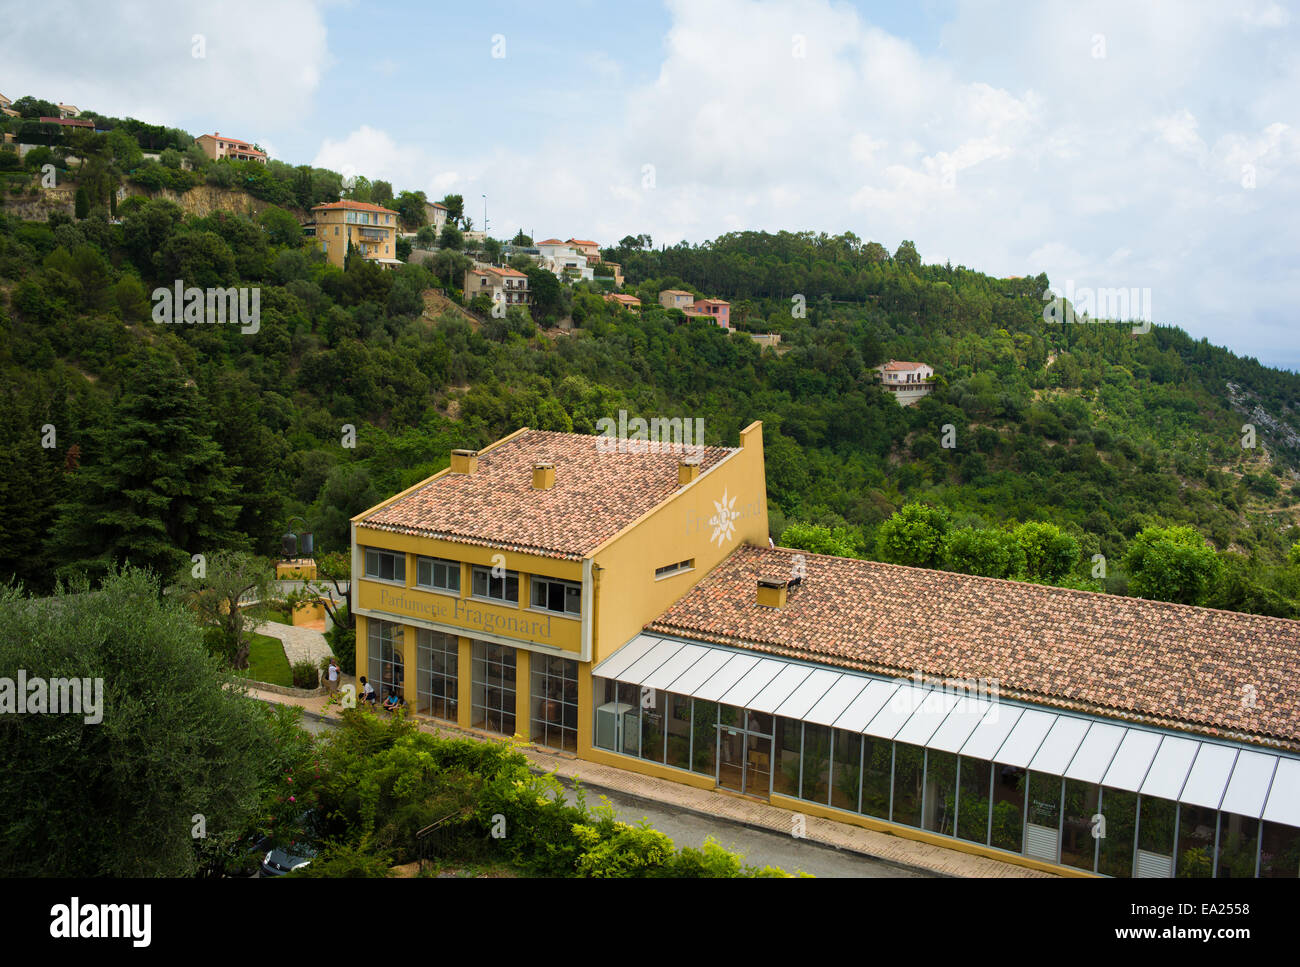 Parfumerie Fragonard Eze Village France Stock Photo 75036004 Alamy